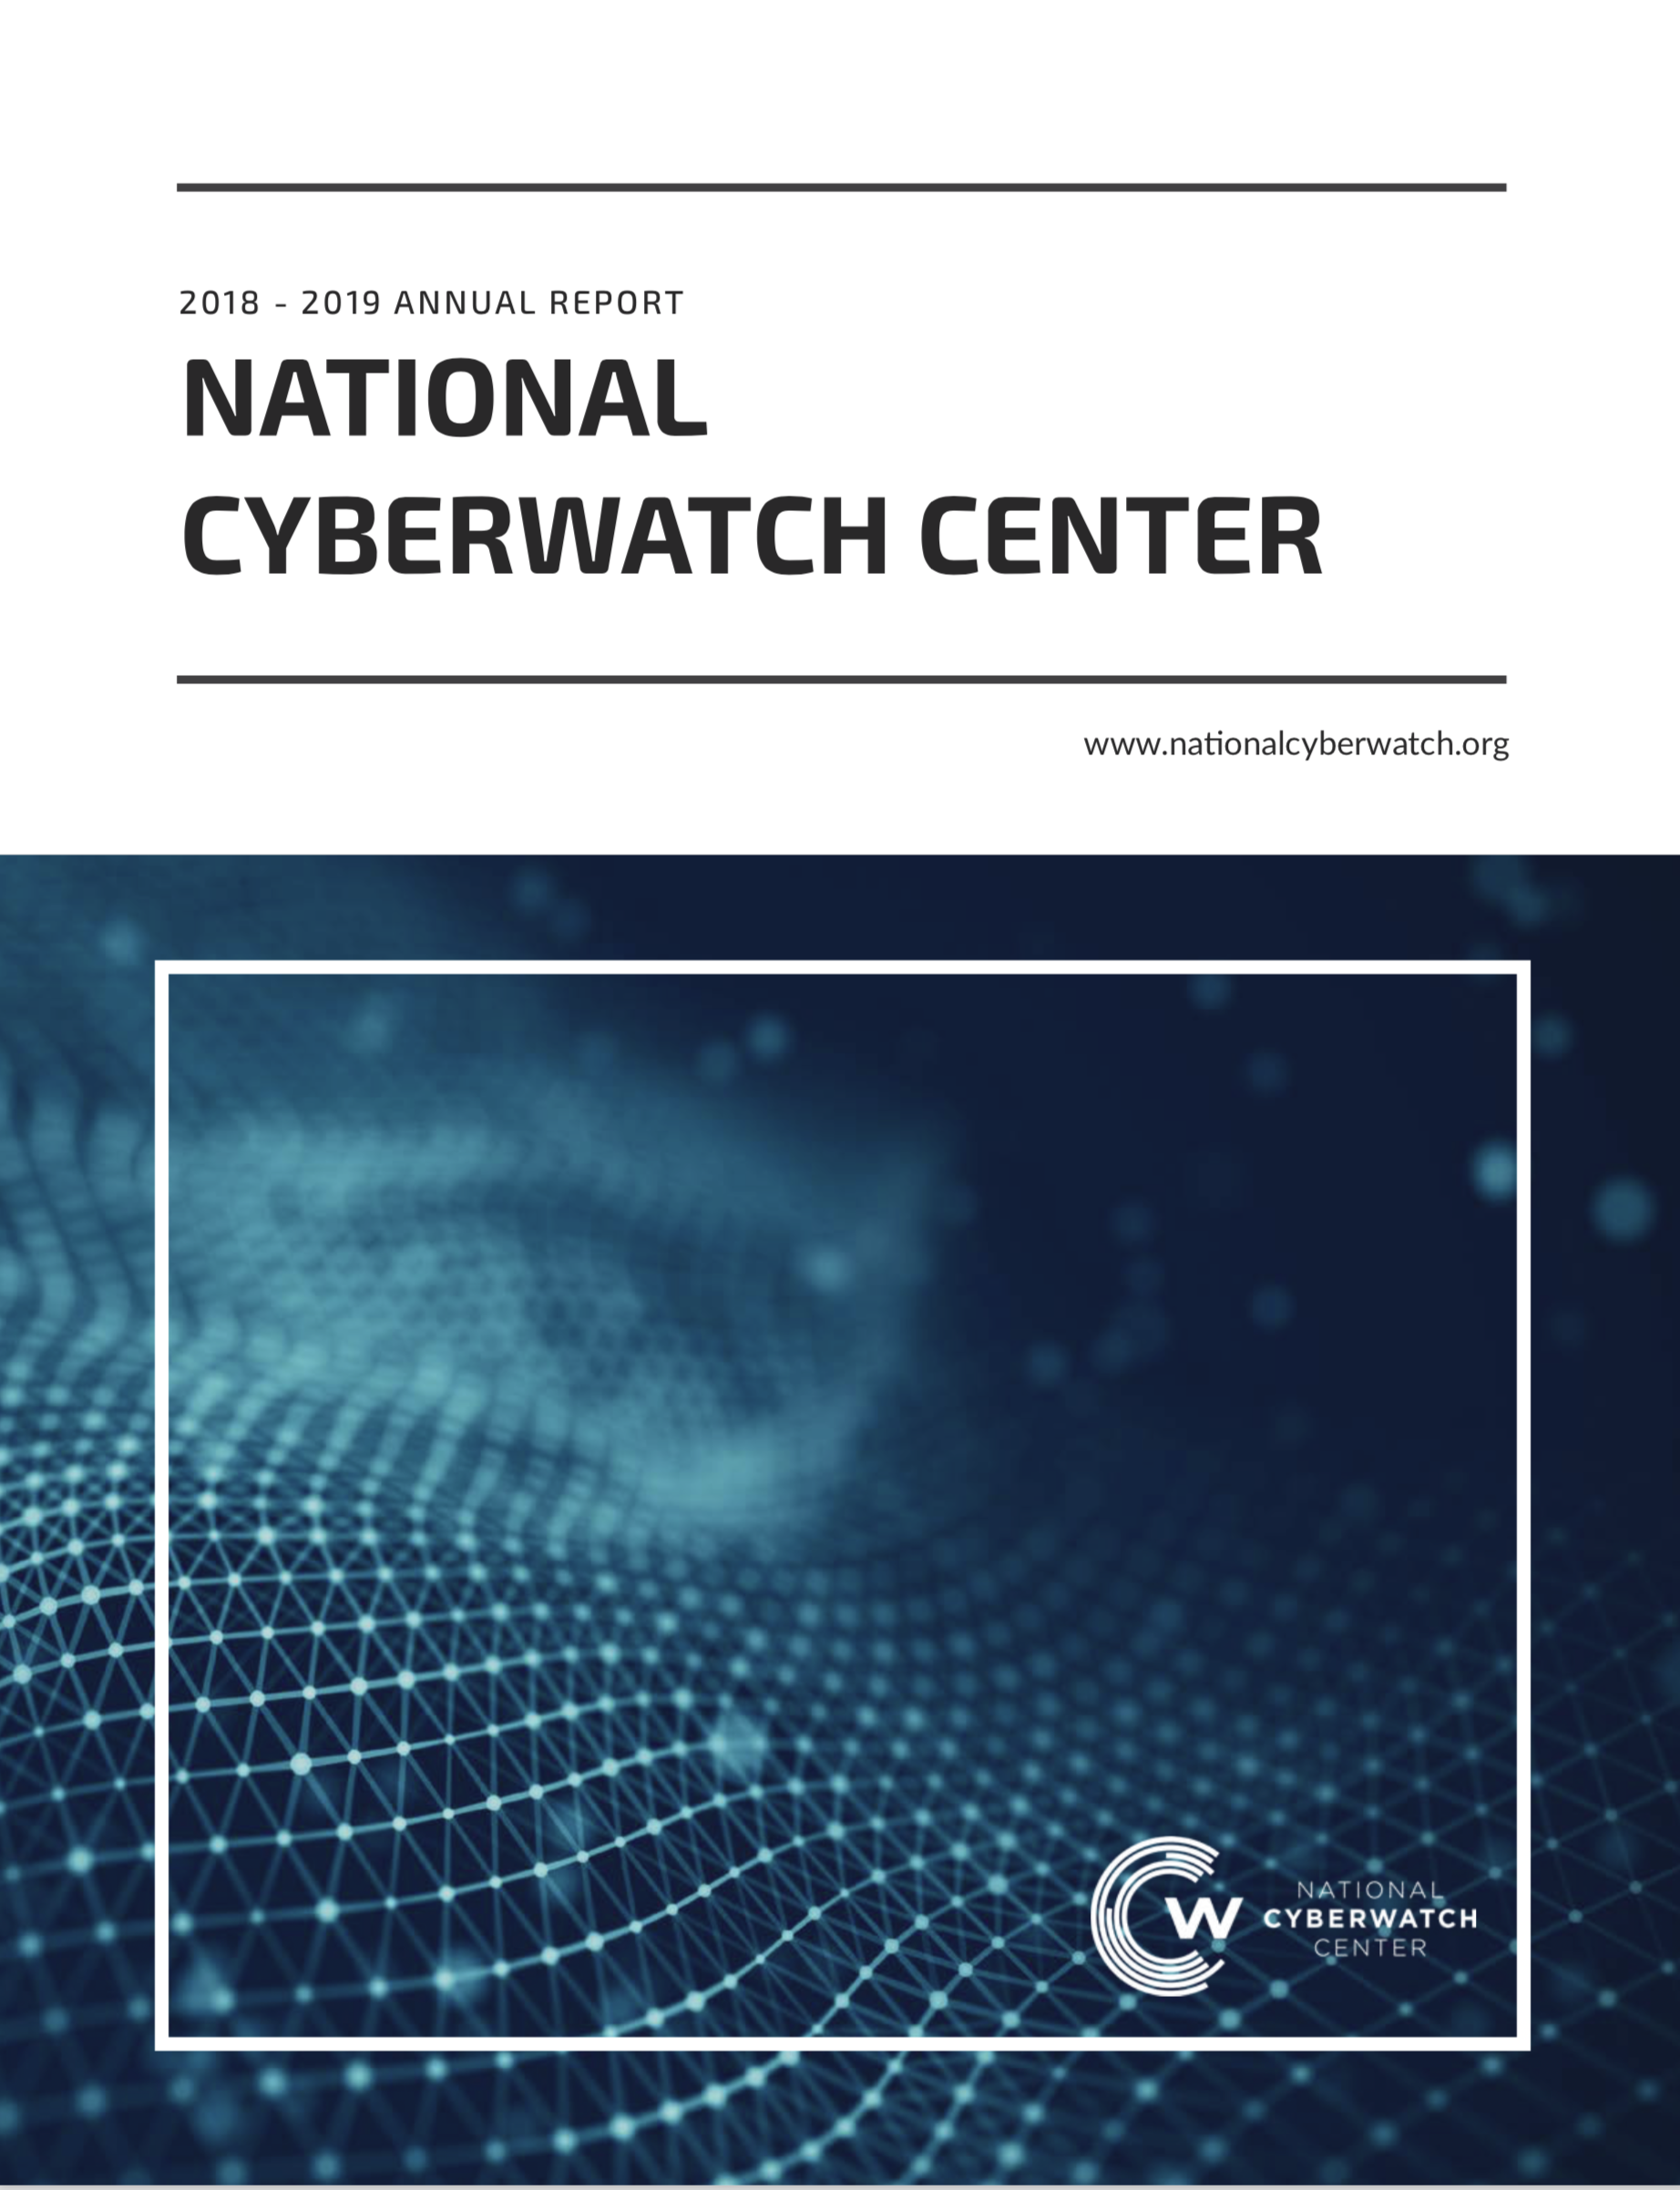 2018-2019 National CyberWatch Center Annual Report